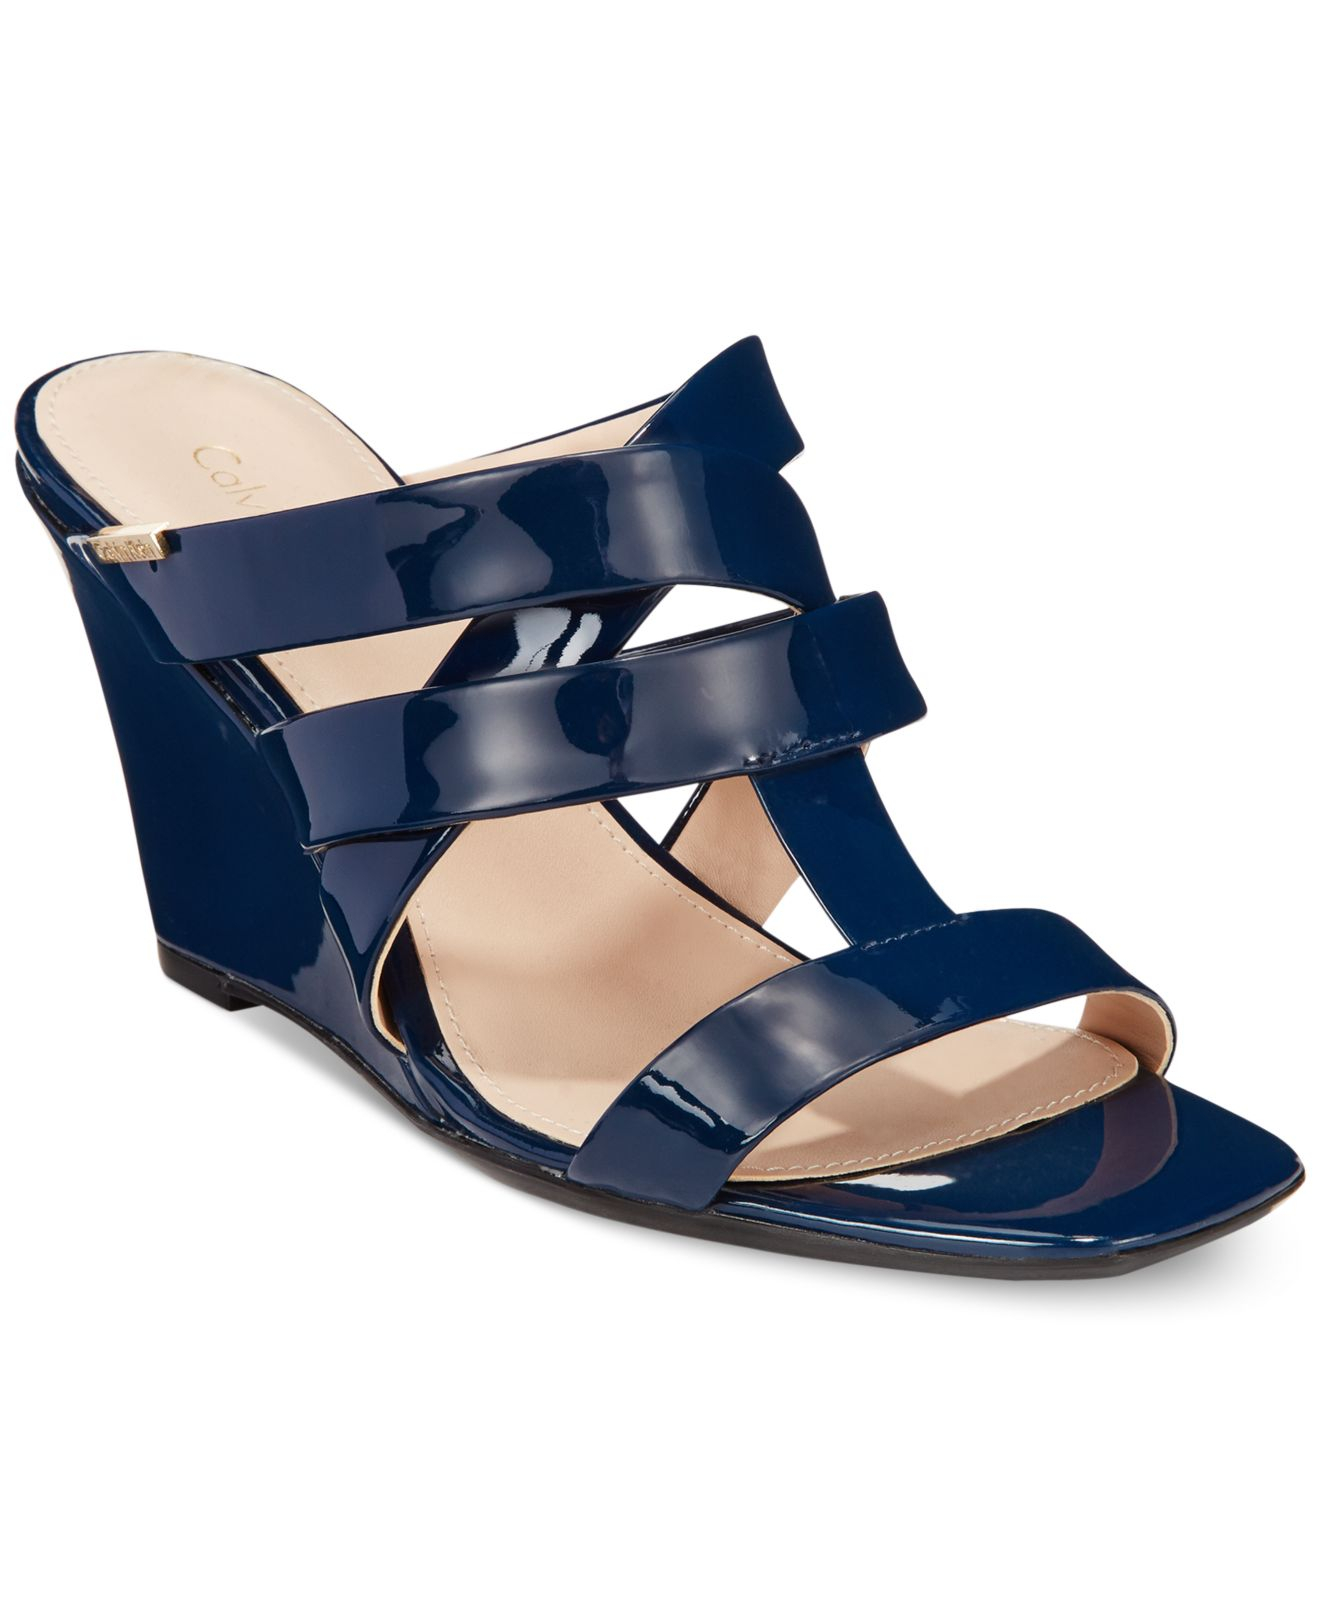 d2361169f60 Gallery. Previously sold at  Macy s · Women s Chloe Gladiator Sandals  Women s Silver Wedges ...